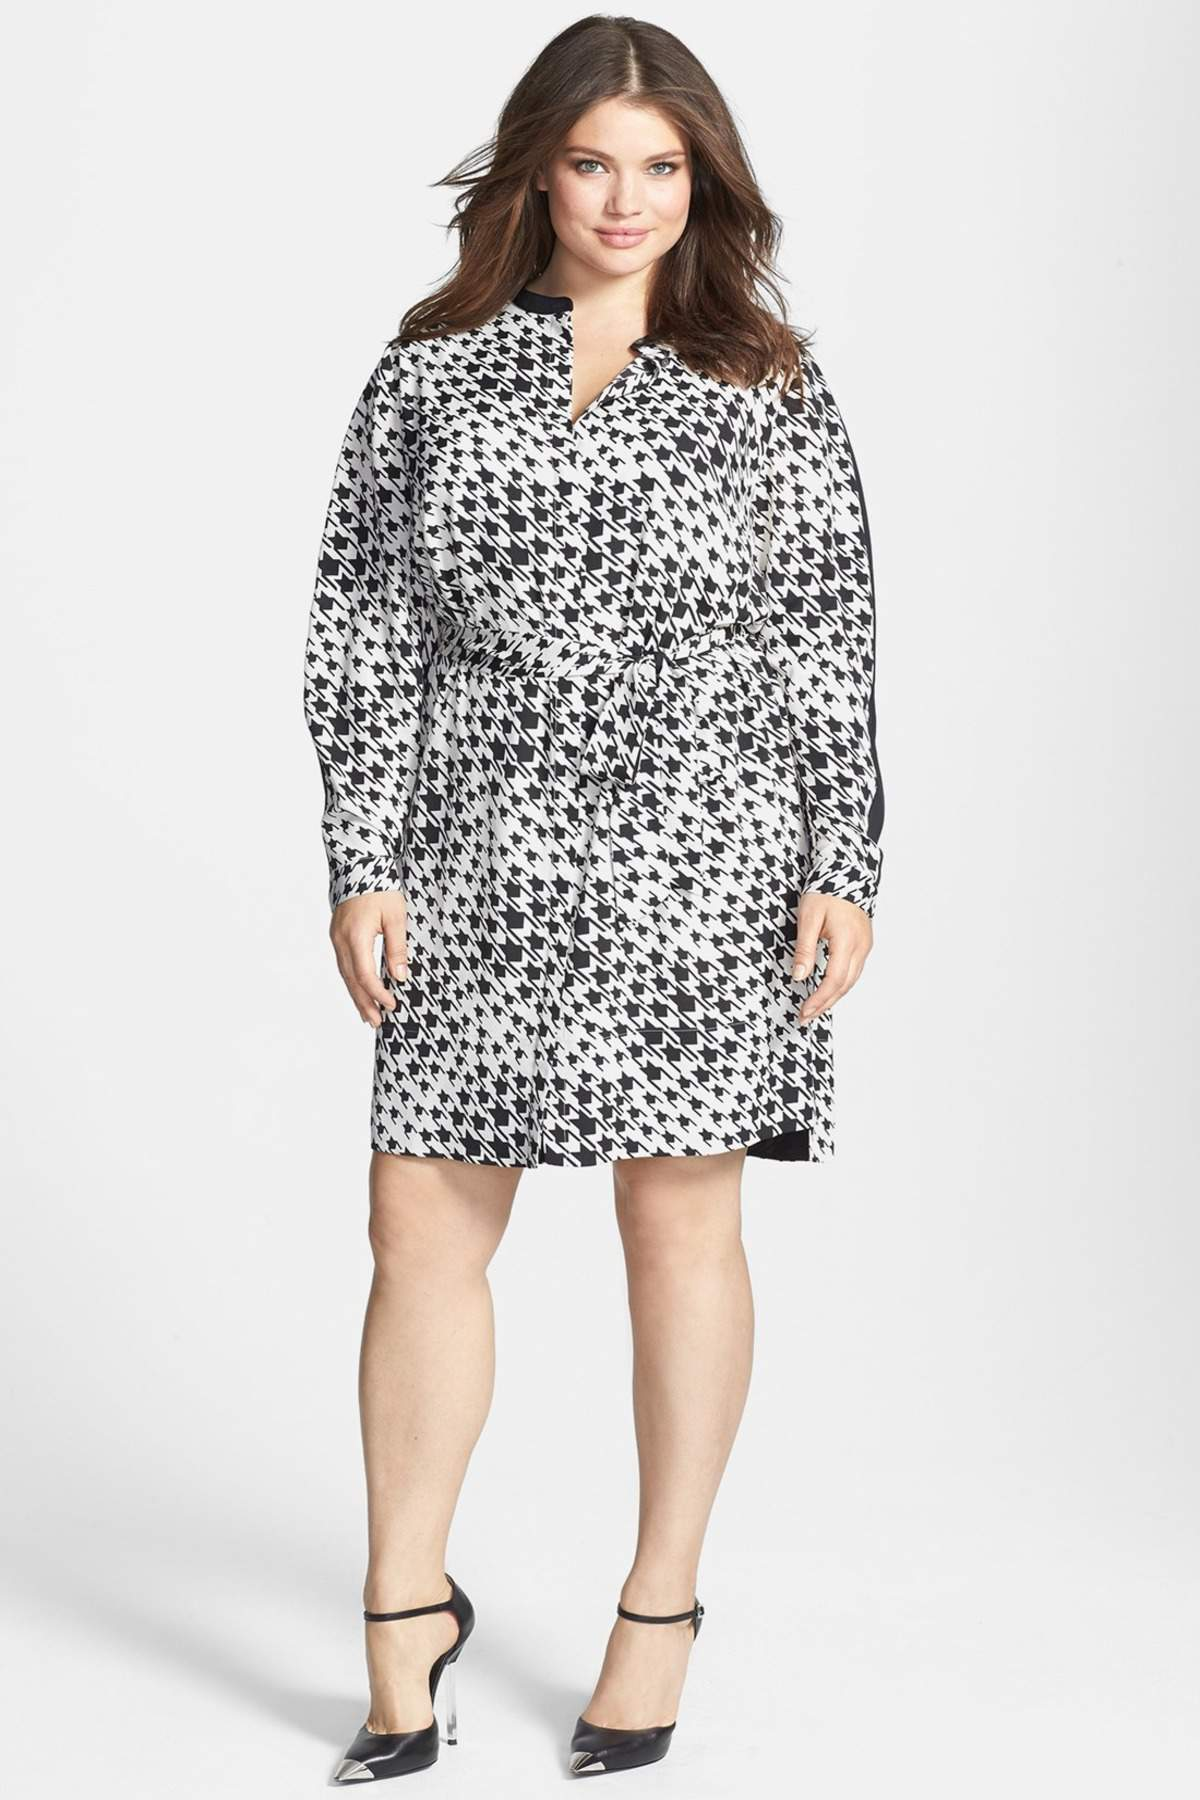 DKNYC Plus Size Contrast Trim Print Belted Shirtdress at Nordstrom Rack